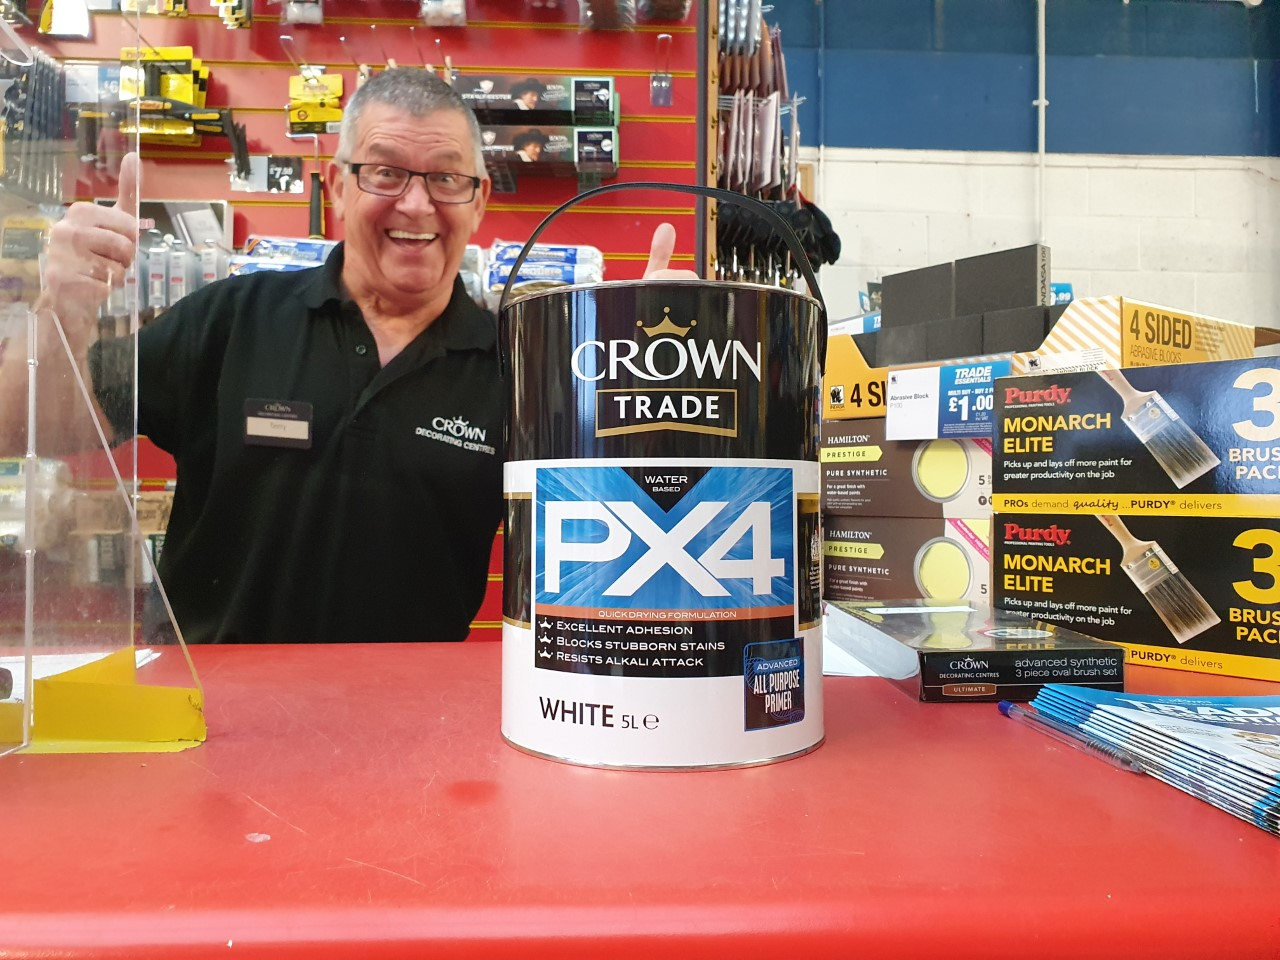 Professional decorator Ryan Fouger gives a review on Crown Trade PX4, a water-based adhesion primer and stain block in one product